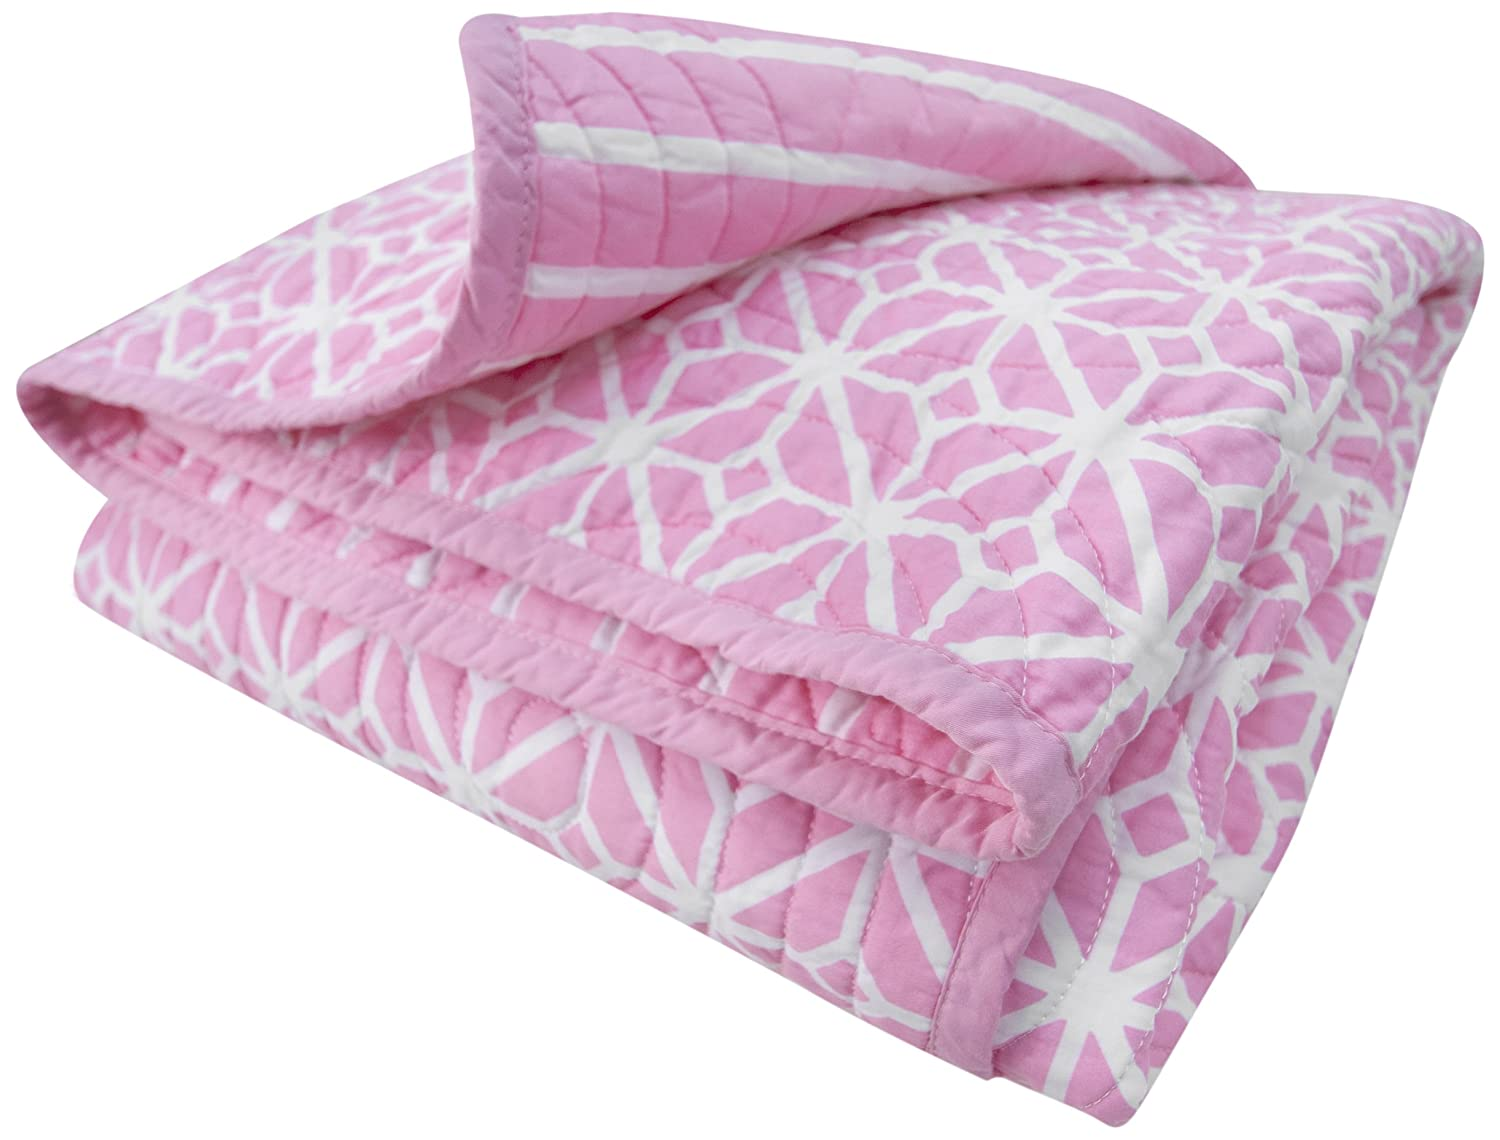 CoCaLo Mix & Match Trellis/Candy Stripe Coverlet, Audrey (Discontinued by Manufacturer) 7911-020-103-0400